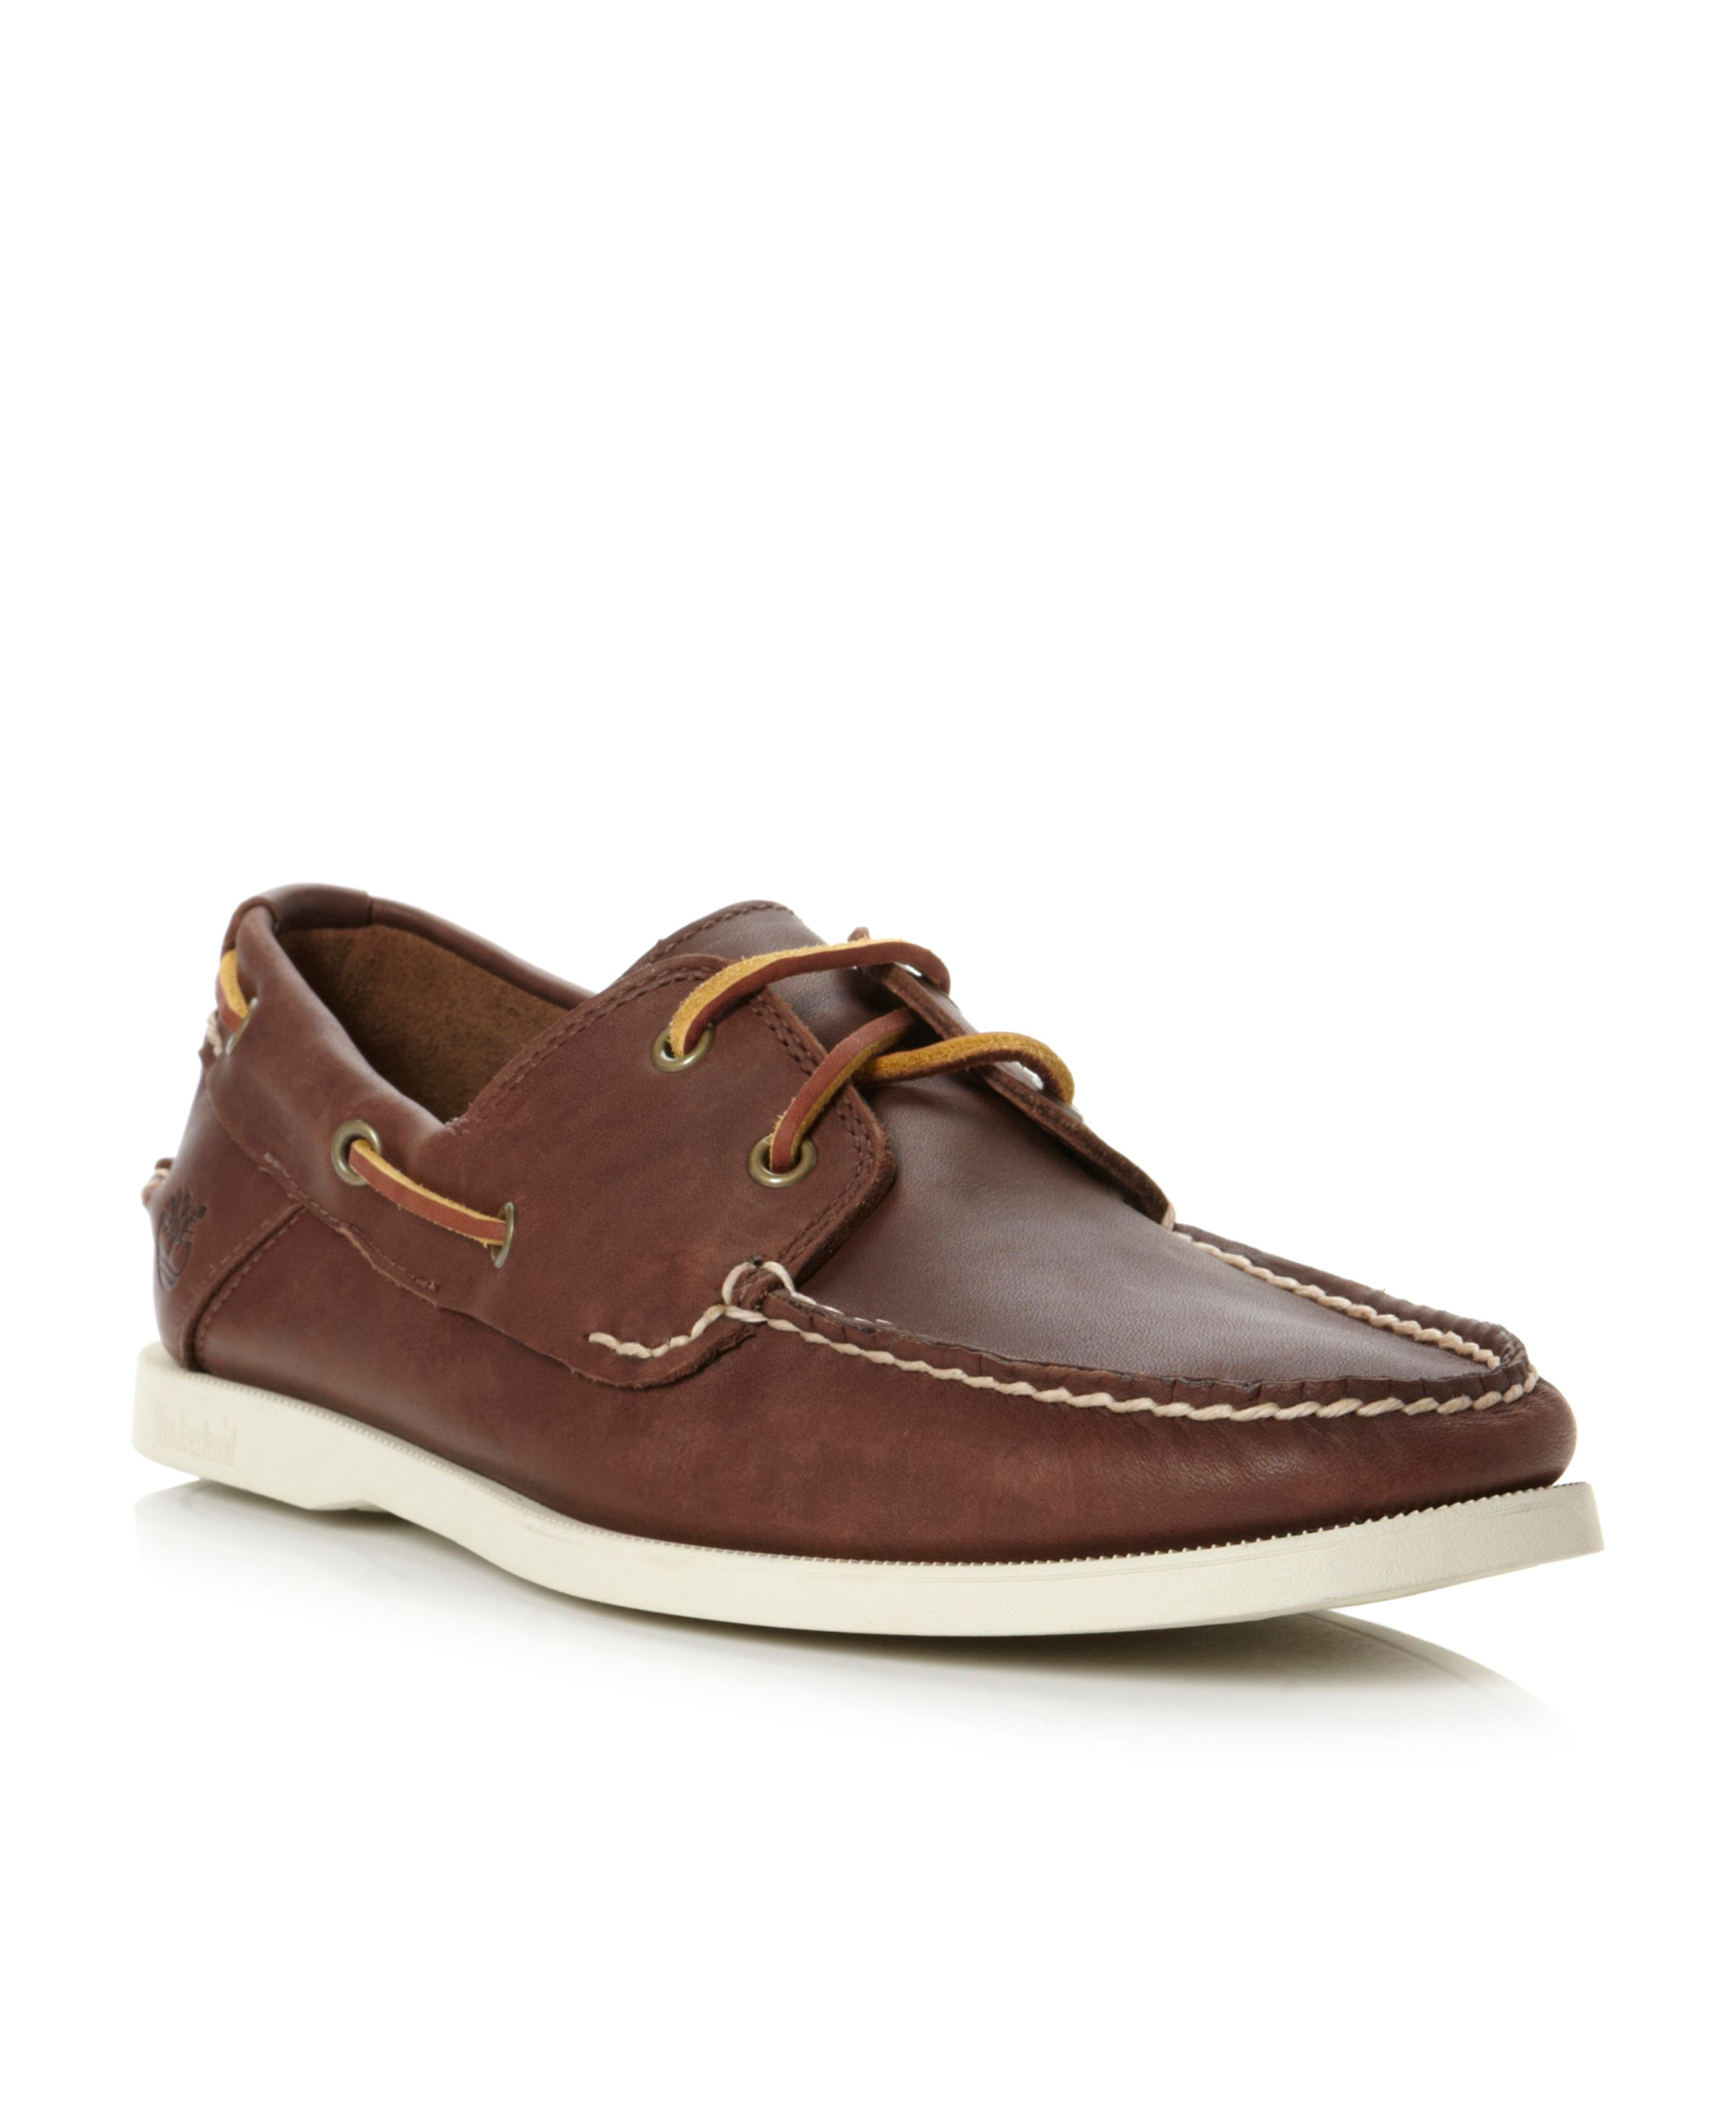 timberland deck shoes shop for cheap s footwear and